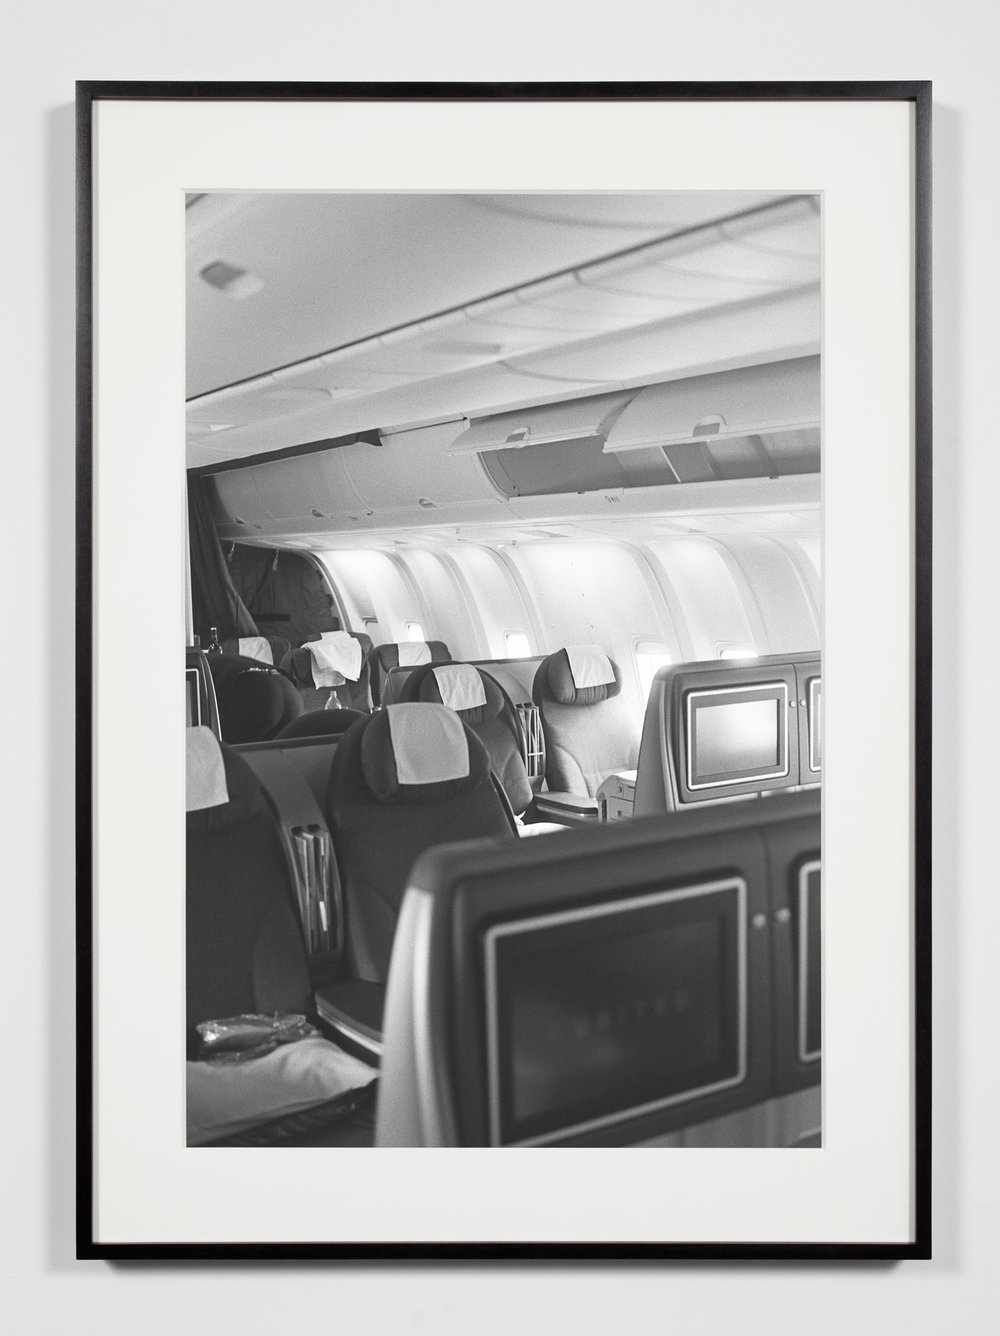 Business Class Cabin, Moscow, Russia, May 17, 2009   2011  Epson Ultrachrome K3 archival ink jet print on Hahnemühle Photo Rag paper  36 3/8 x 26 3/8 inches   Industrial Portraits, 2008–    A Diagram of Forces, 2011